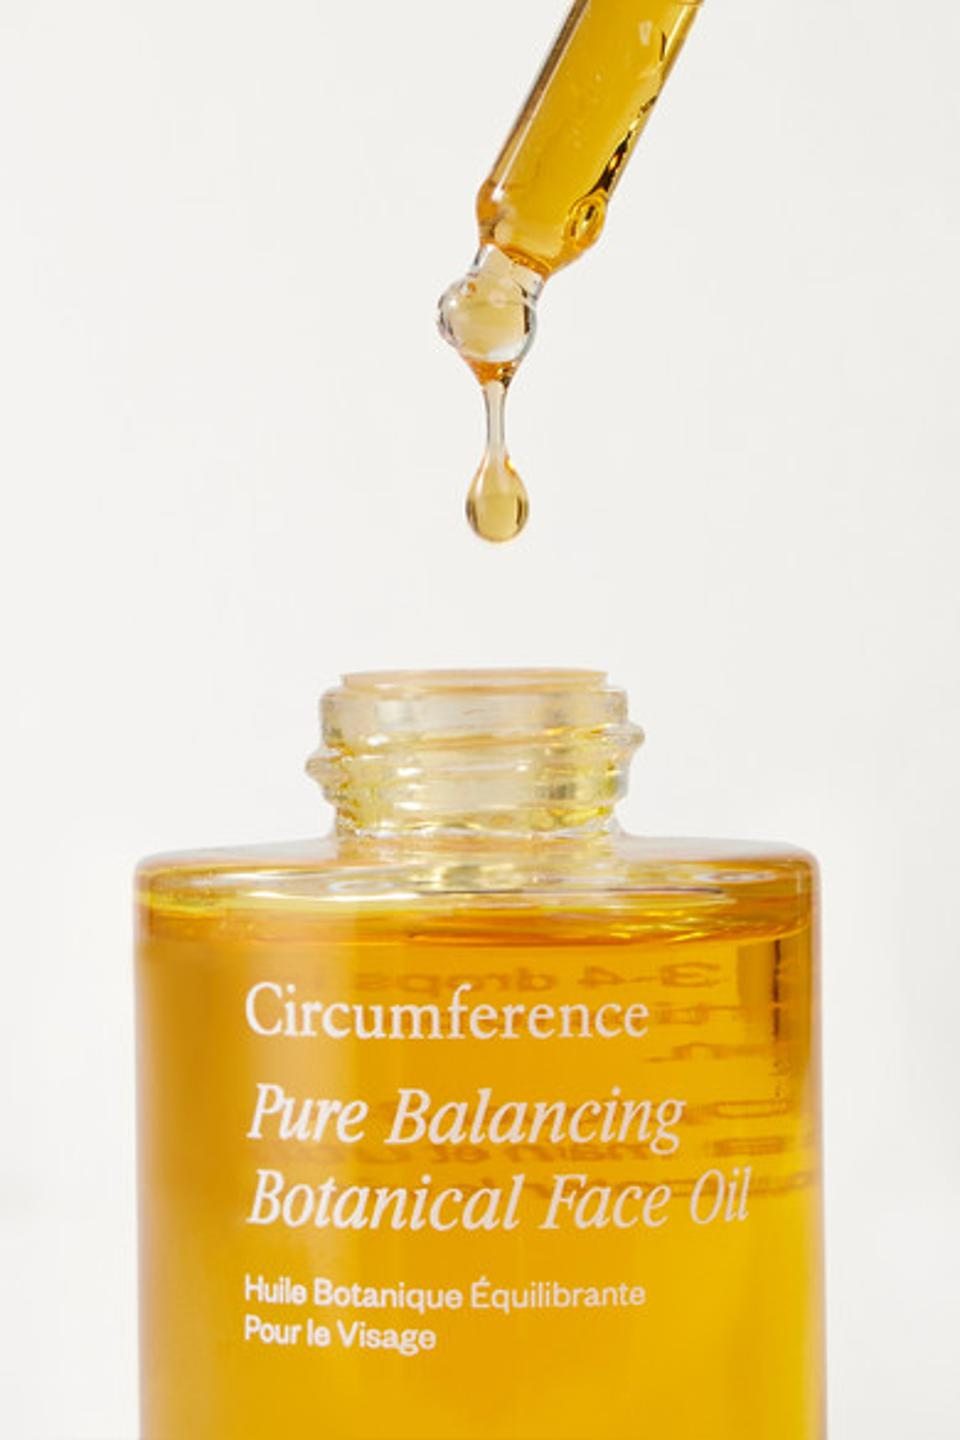 Circumference Pure Balancing Face Oil uses natural botanical that are soured indigenously to ensure potency.